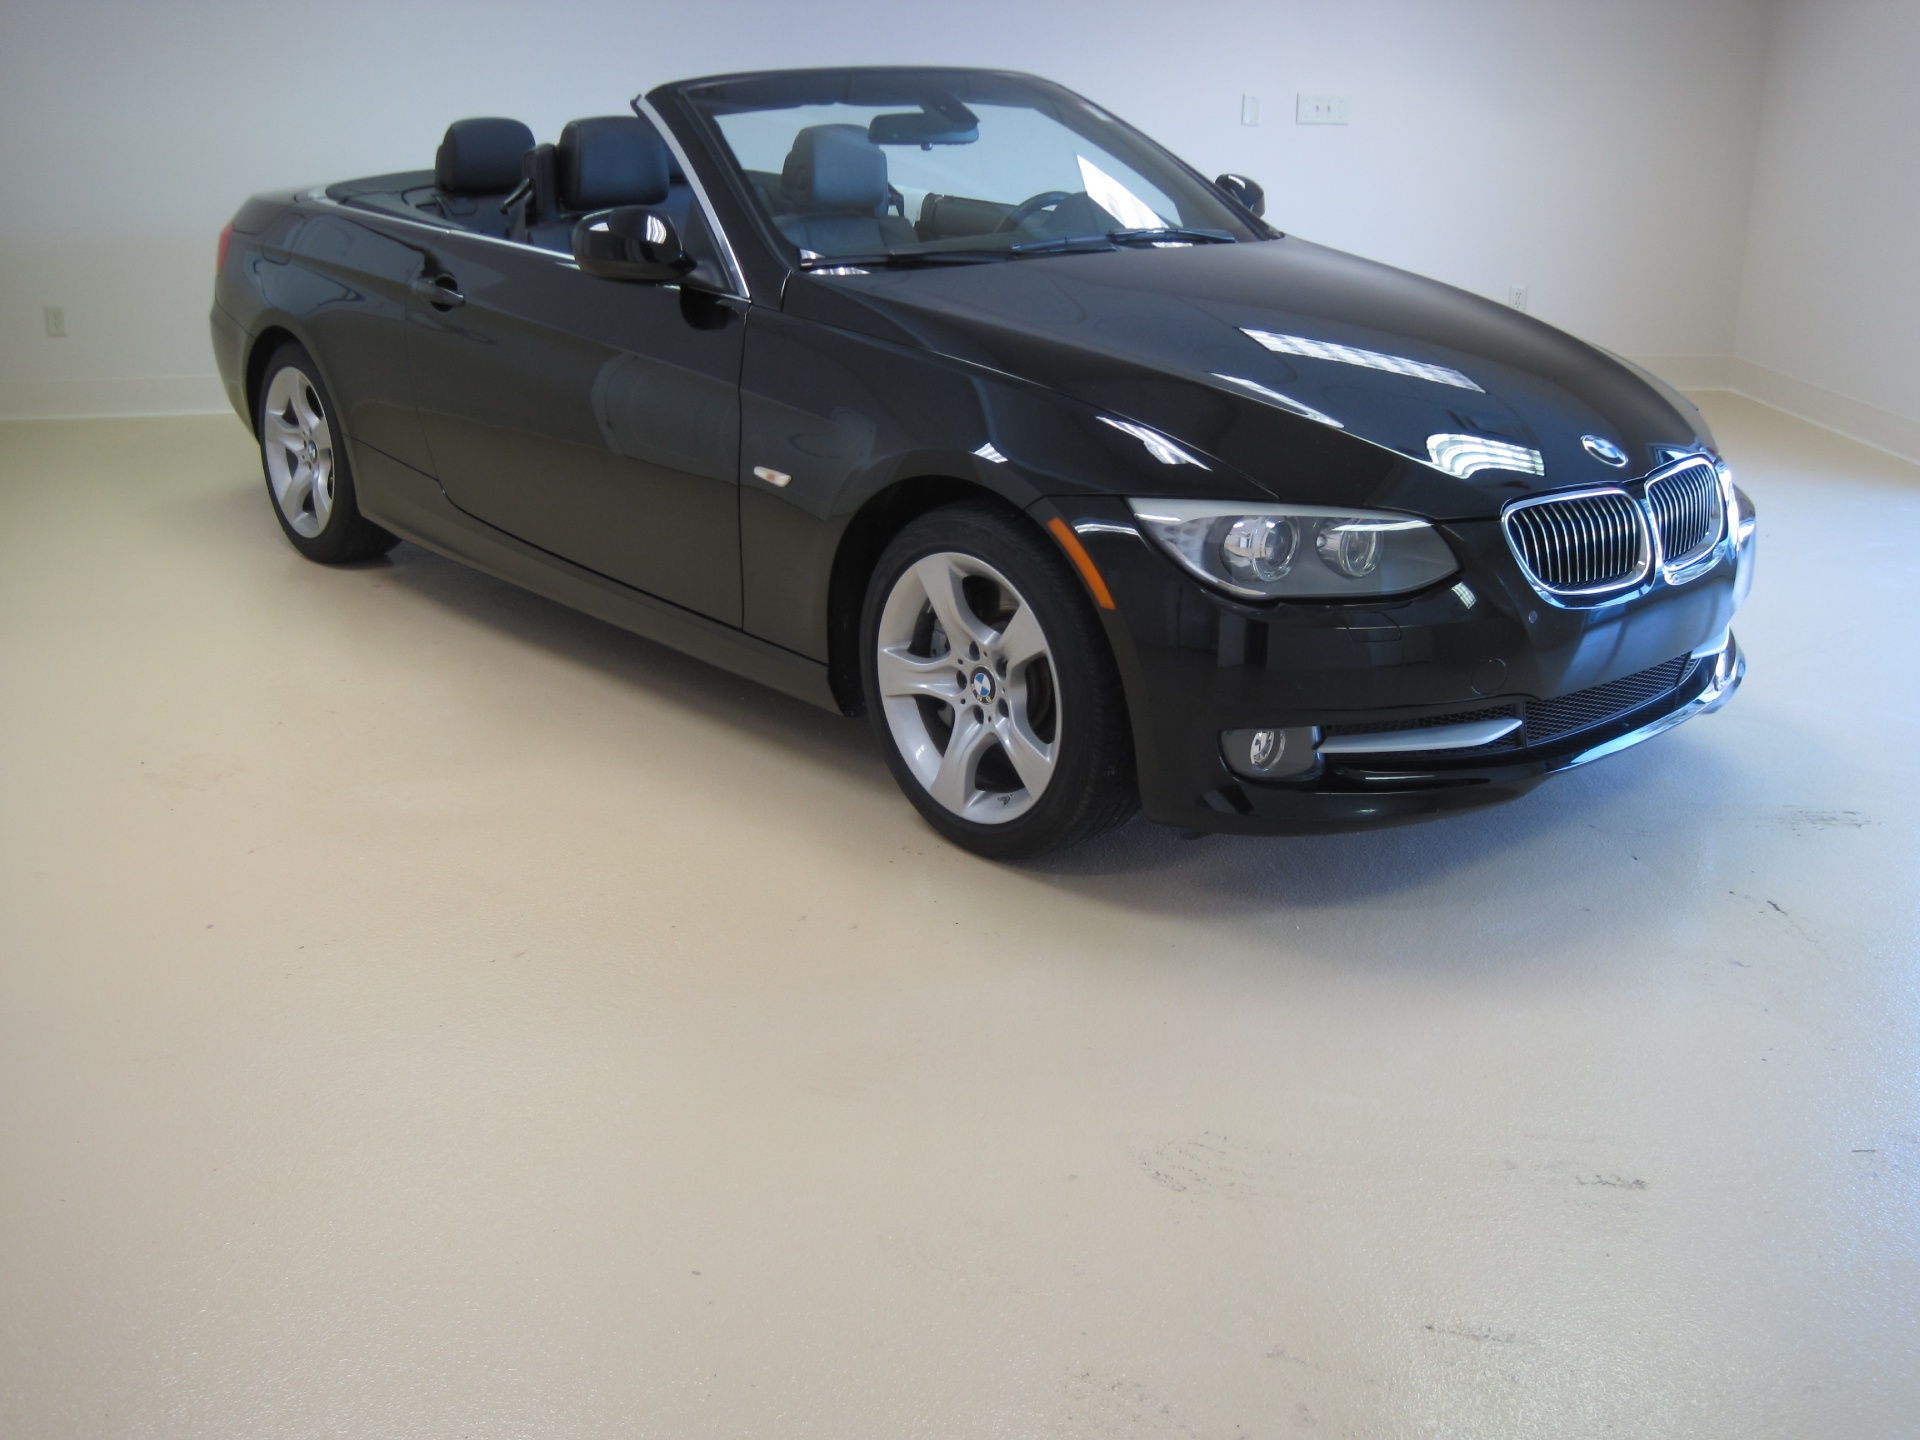 BMW Series I CONVERTIBLESUPER CLEANLOADEDCONVENIENCE - 2012 bmw 335i convertible for sale